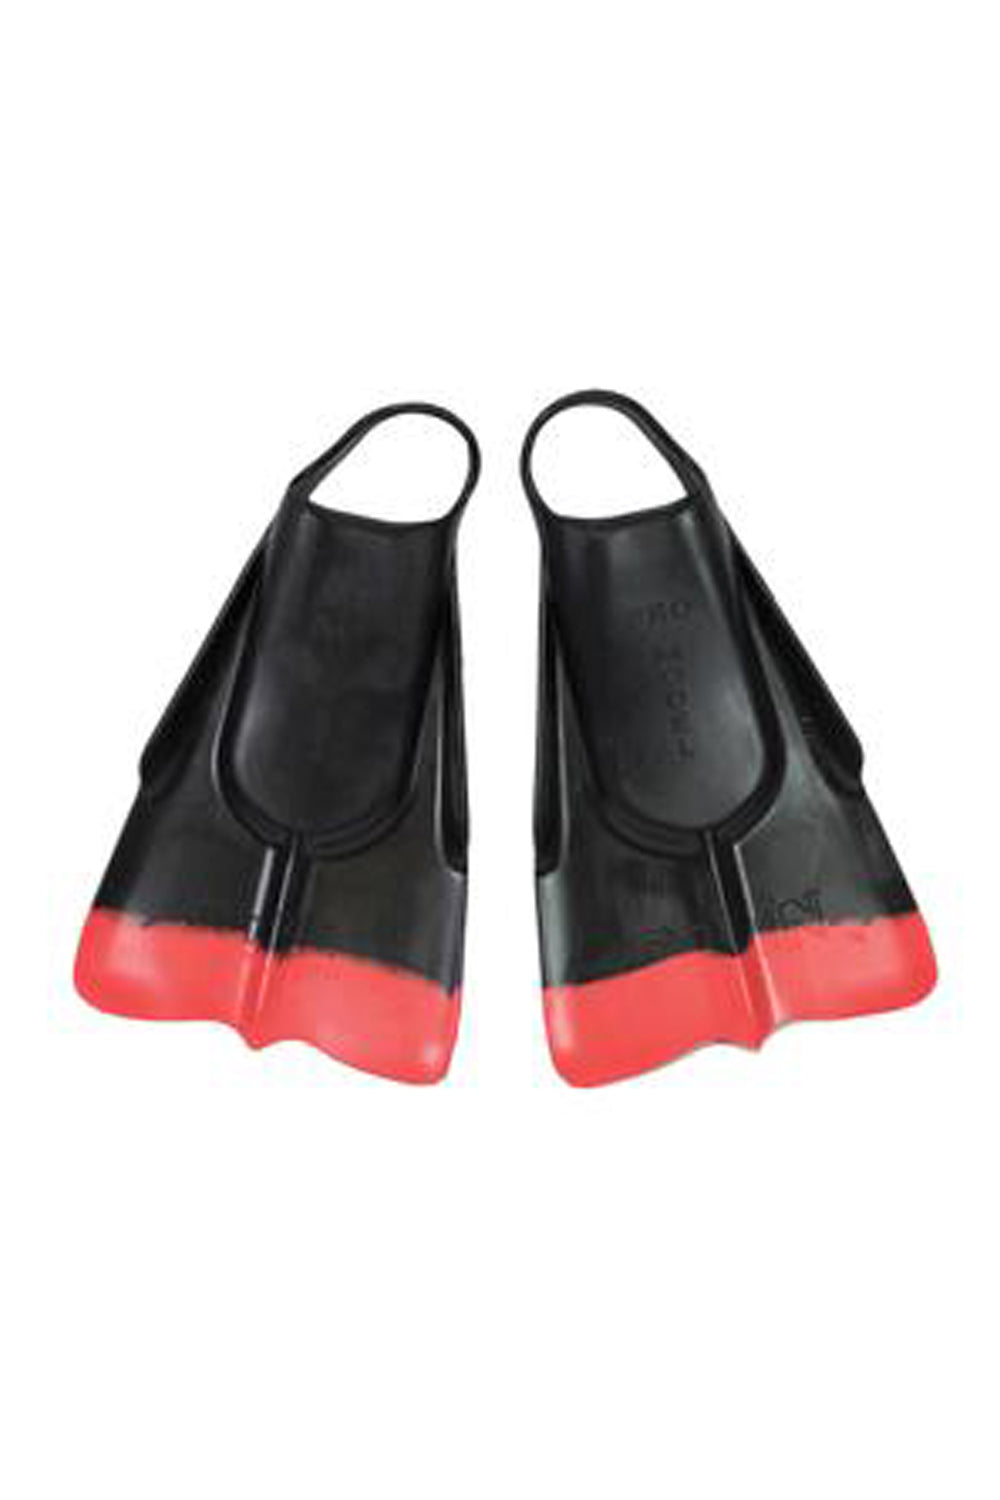 Da Fin Swimfins Flippers - Black / Red